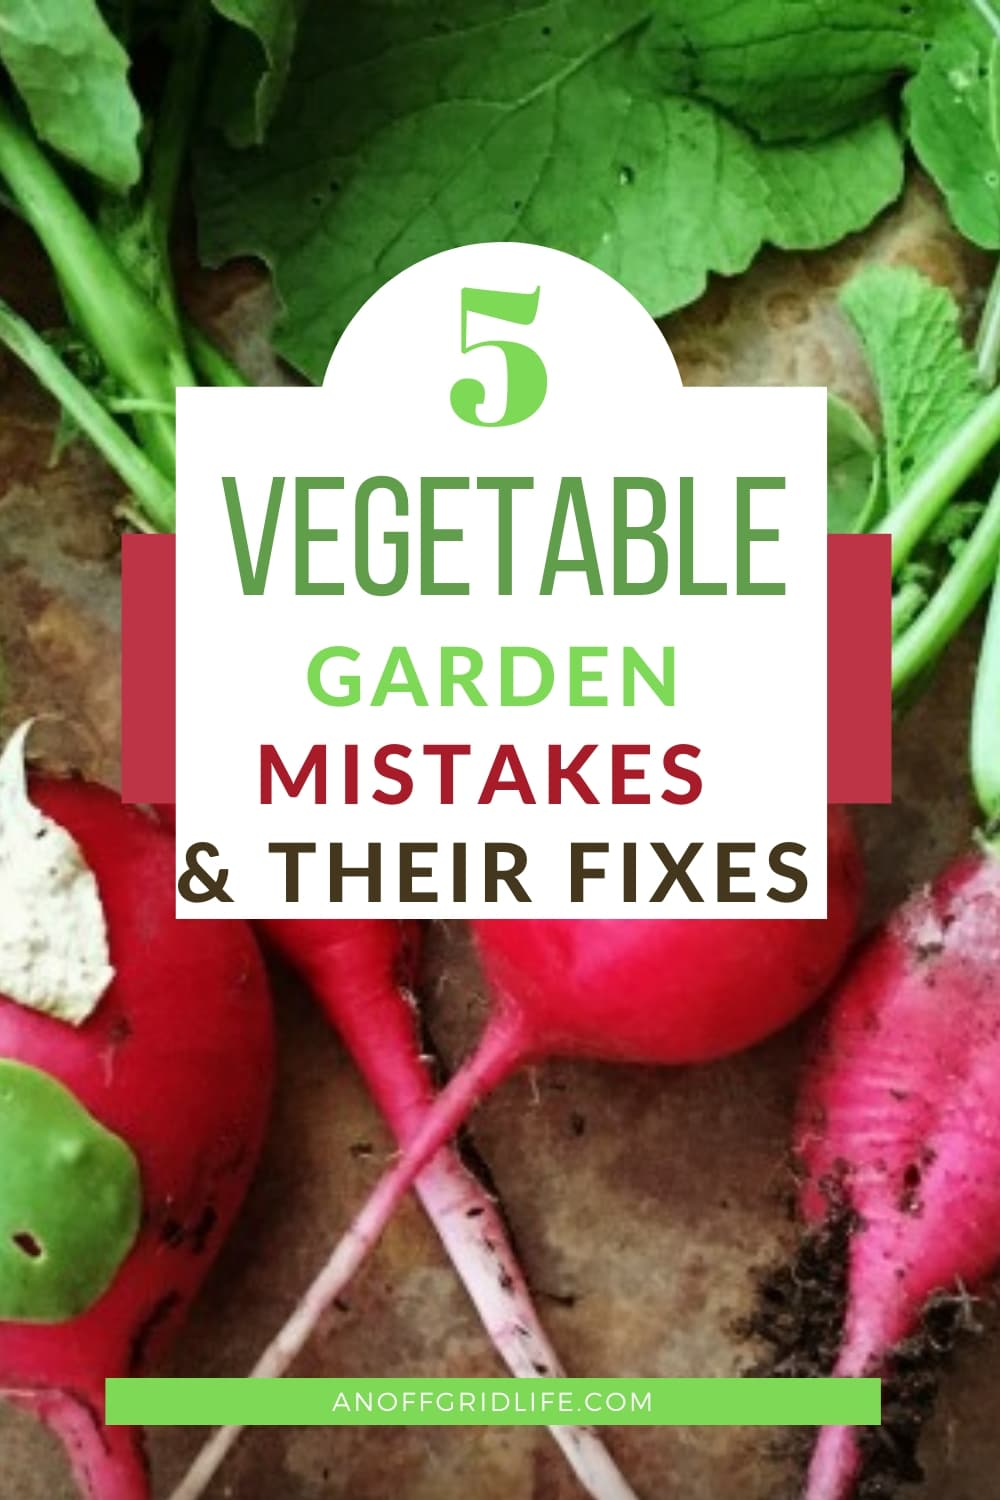 5 vegetable garden mistakes and their fixes text overlay on fresh radishes